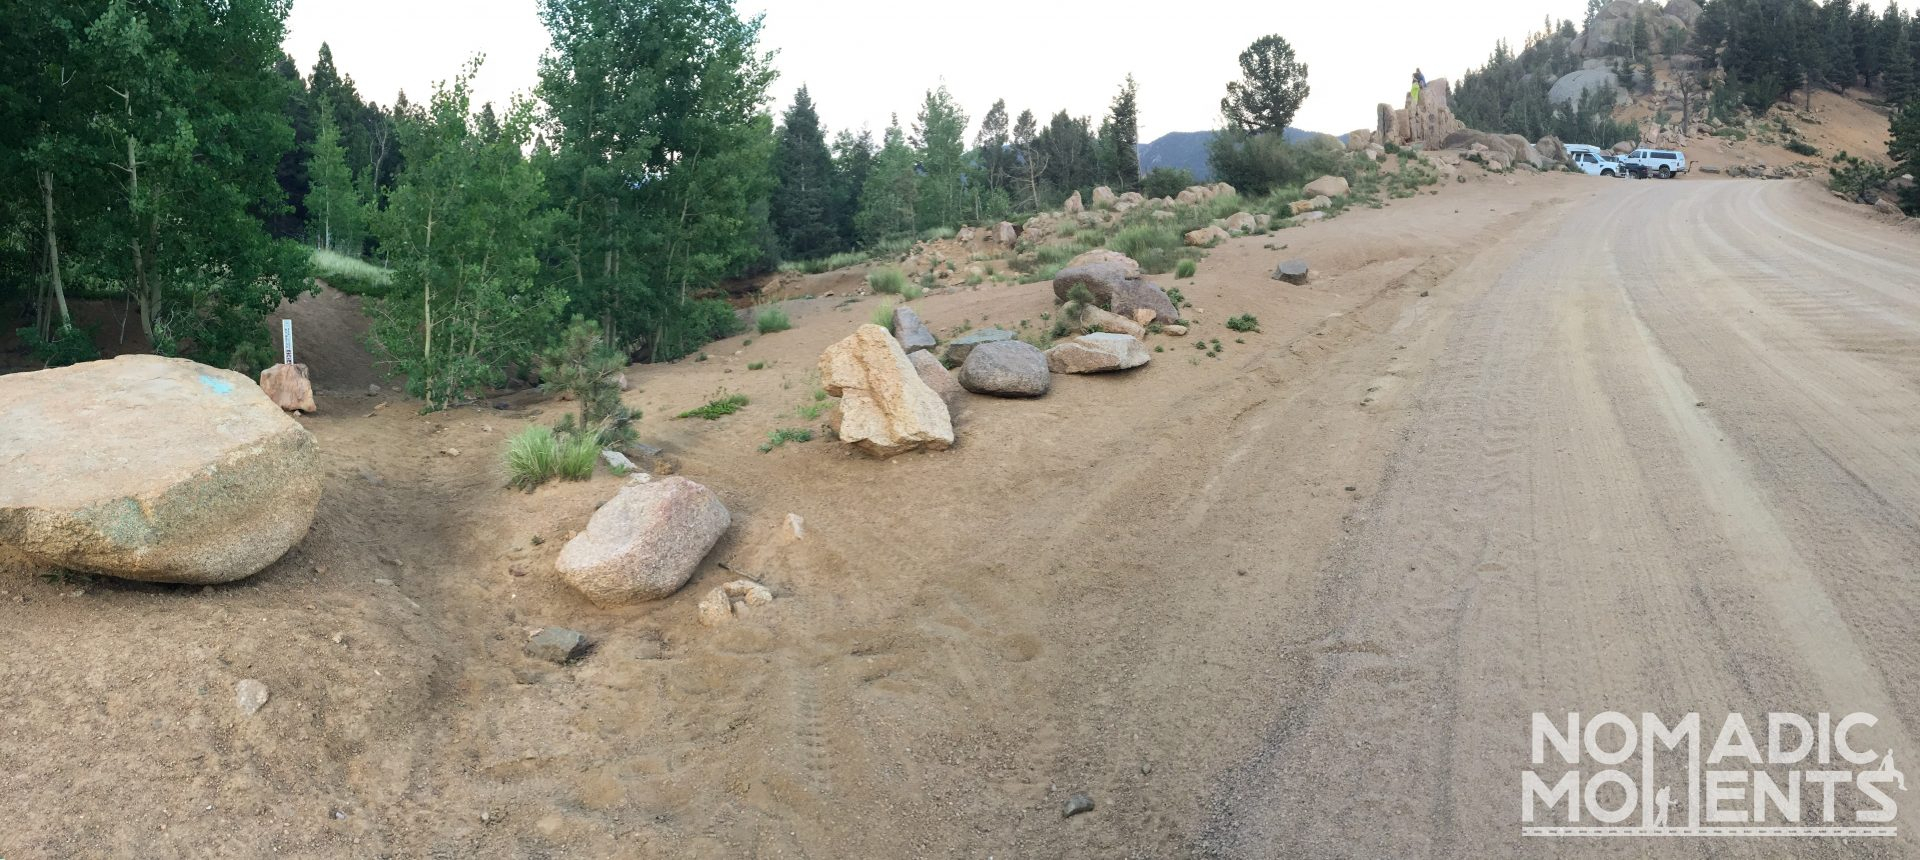 The trailhead for Colorado's St. Peters Dome